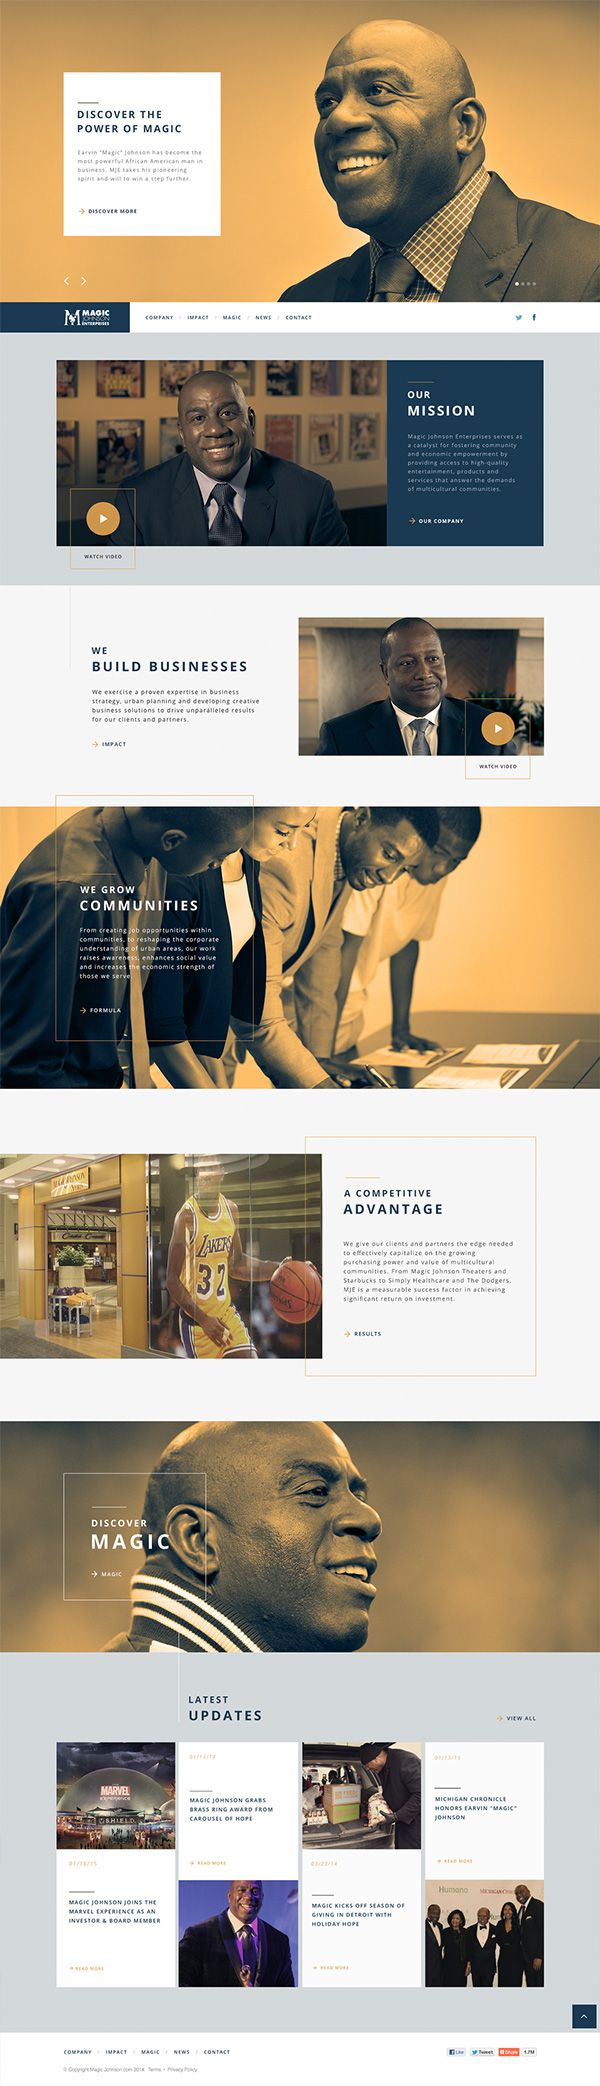 MagicJohnson.com on Web Design Served